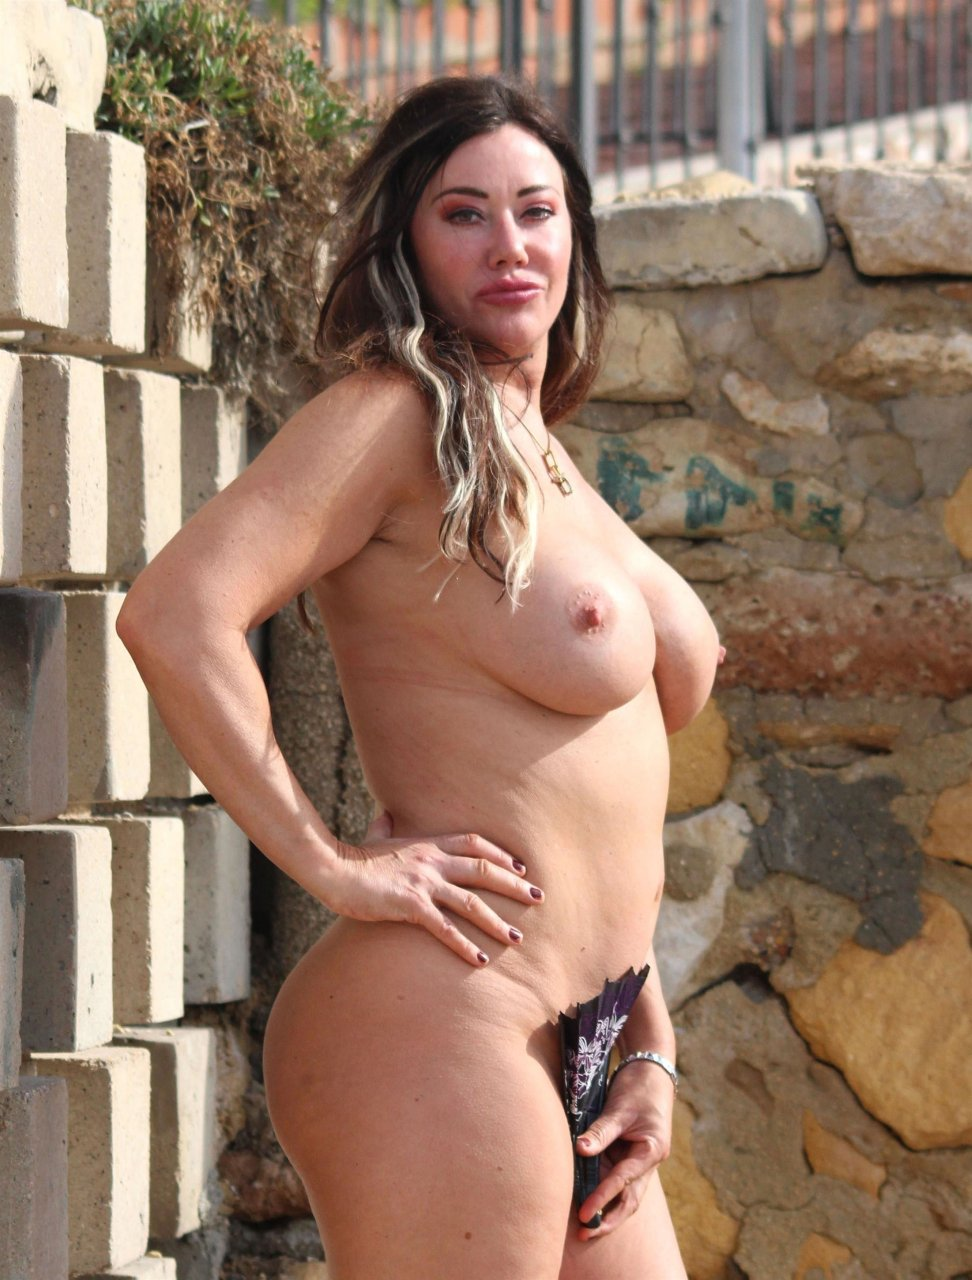 Lisa appleton naked naked (89 photos), Feet Celebrites pictures